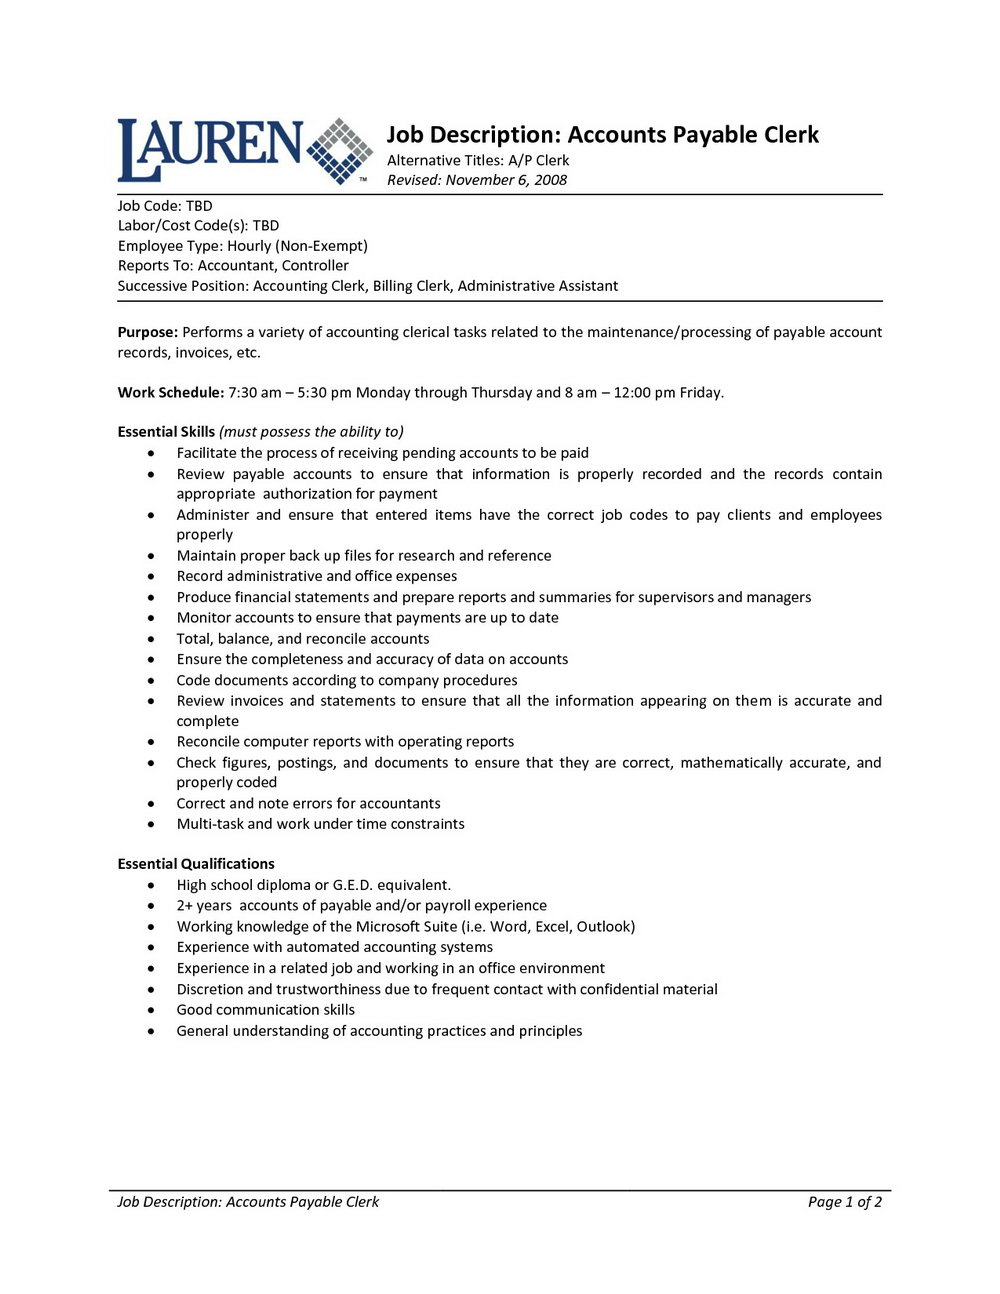 Resume Samples For Accountants Jobs